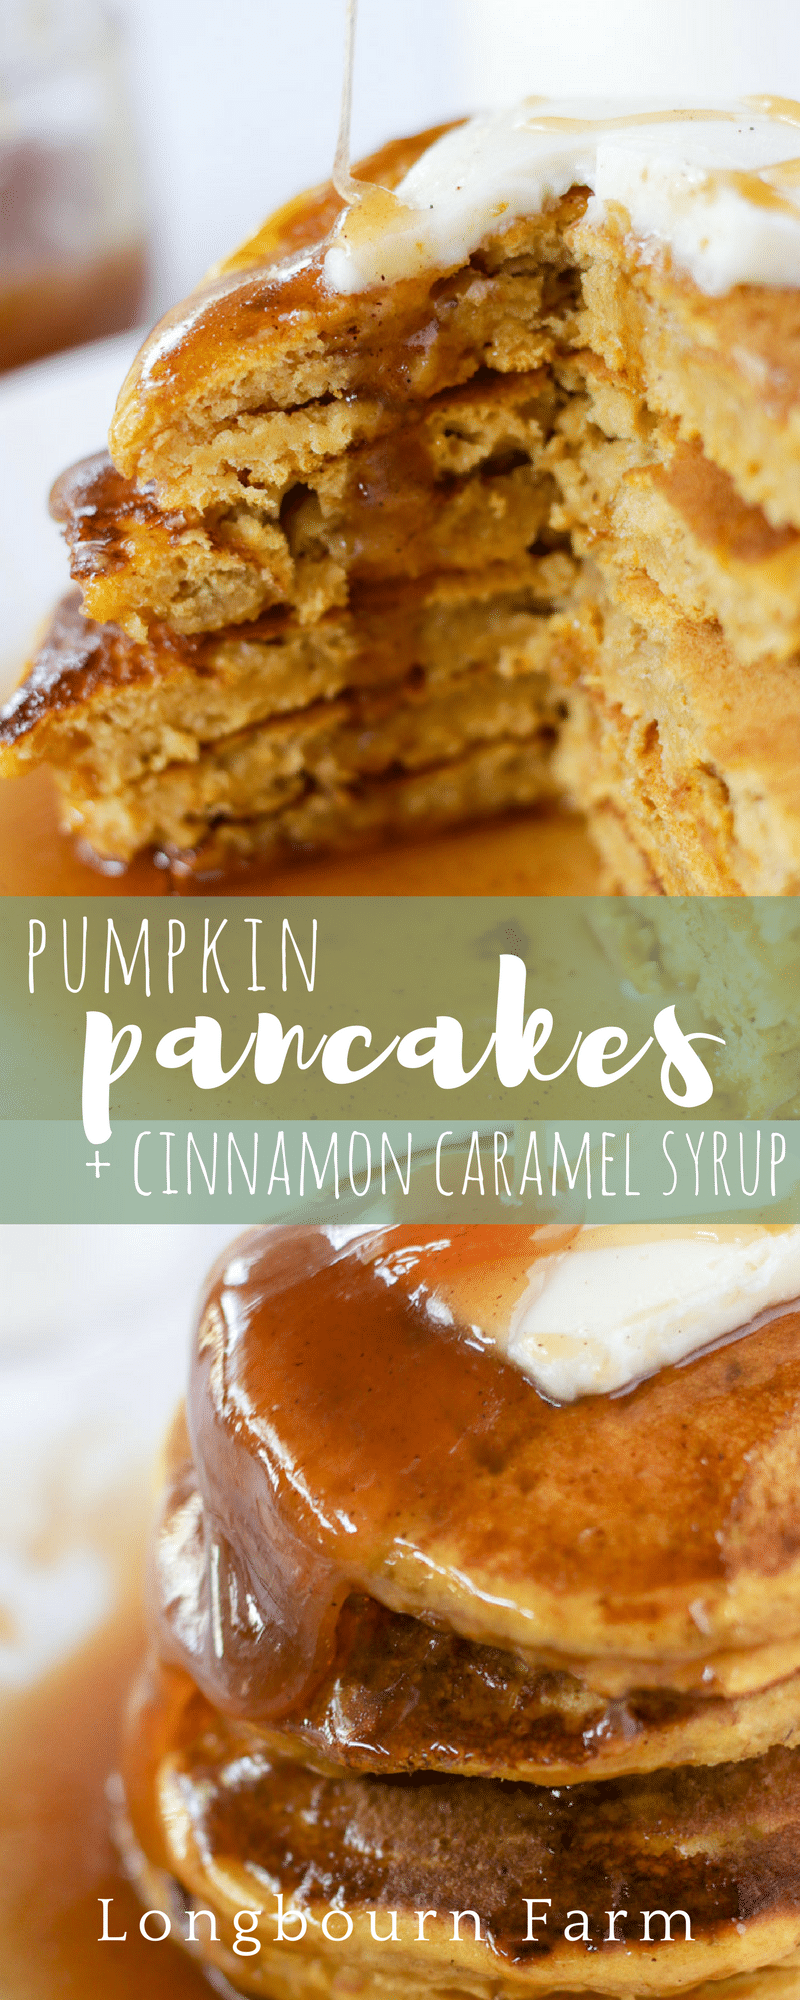 This pumpkin pancake recipe is light, fluffy, and full of pumpkin flavor! Topped with cinnamon caramel syrup, these pancakes are full of Fall flavor! via @longbournfarm